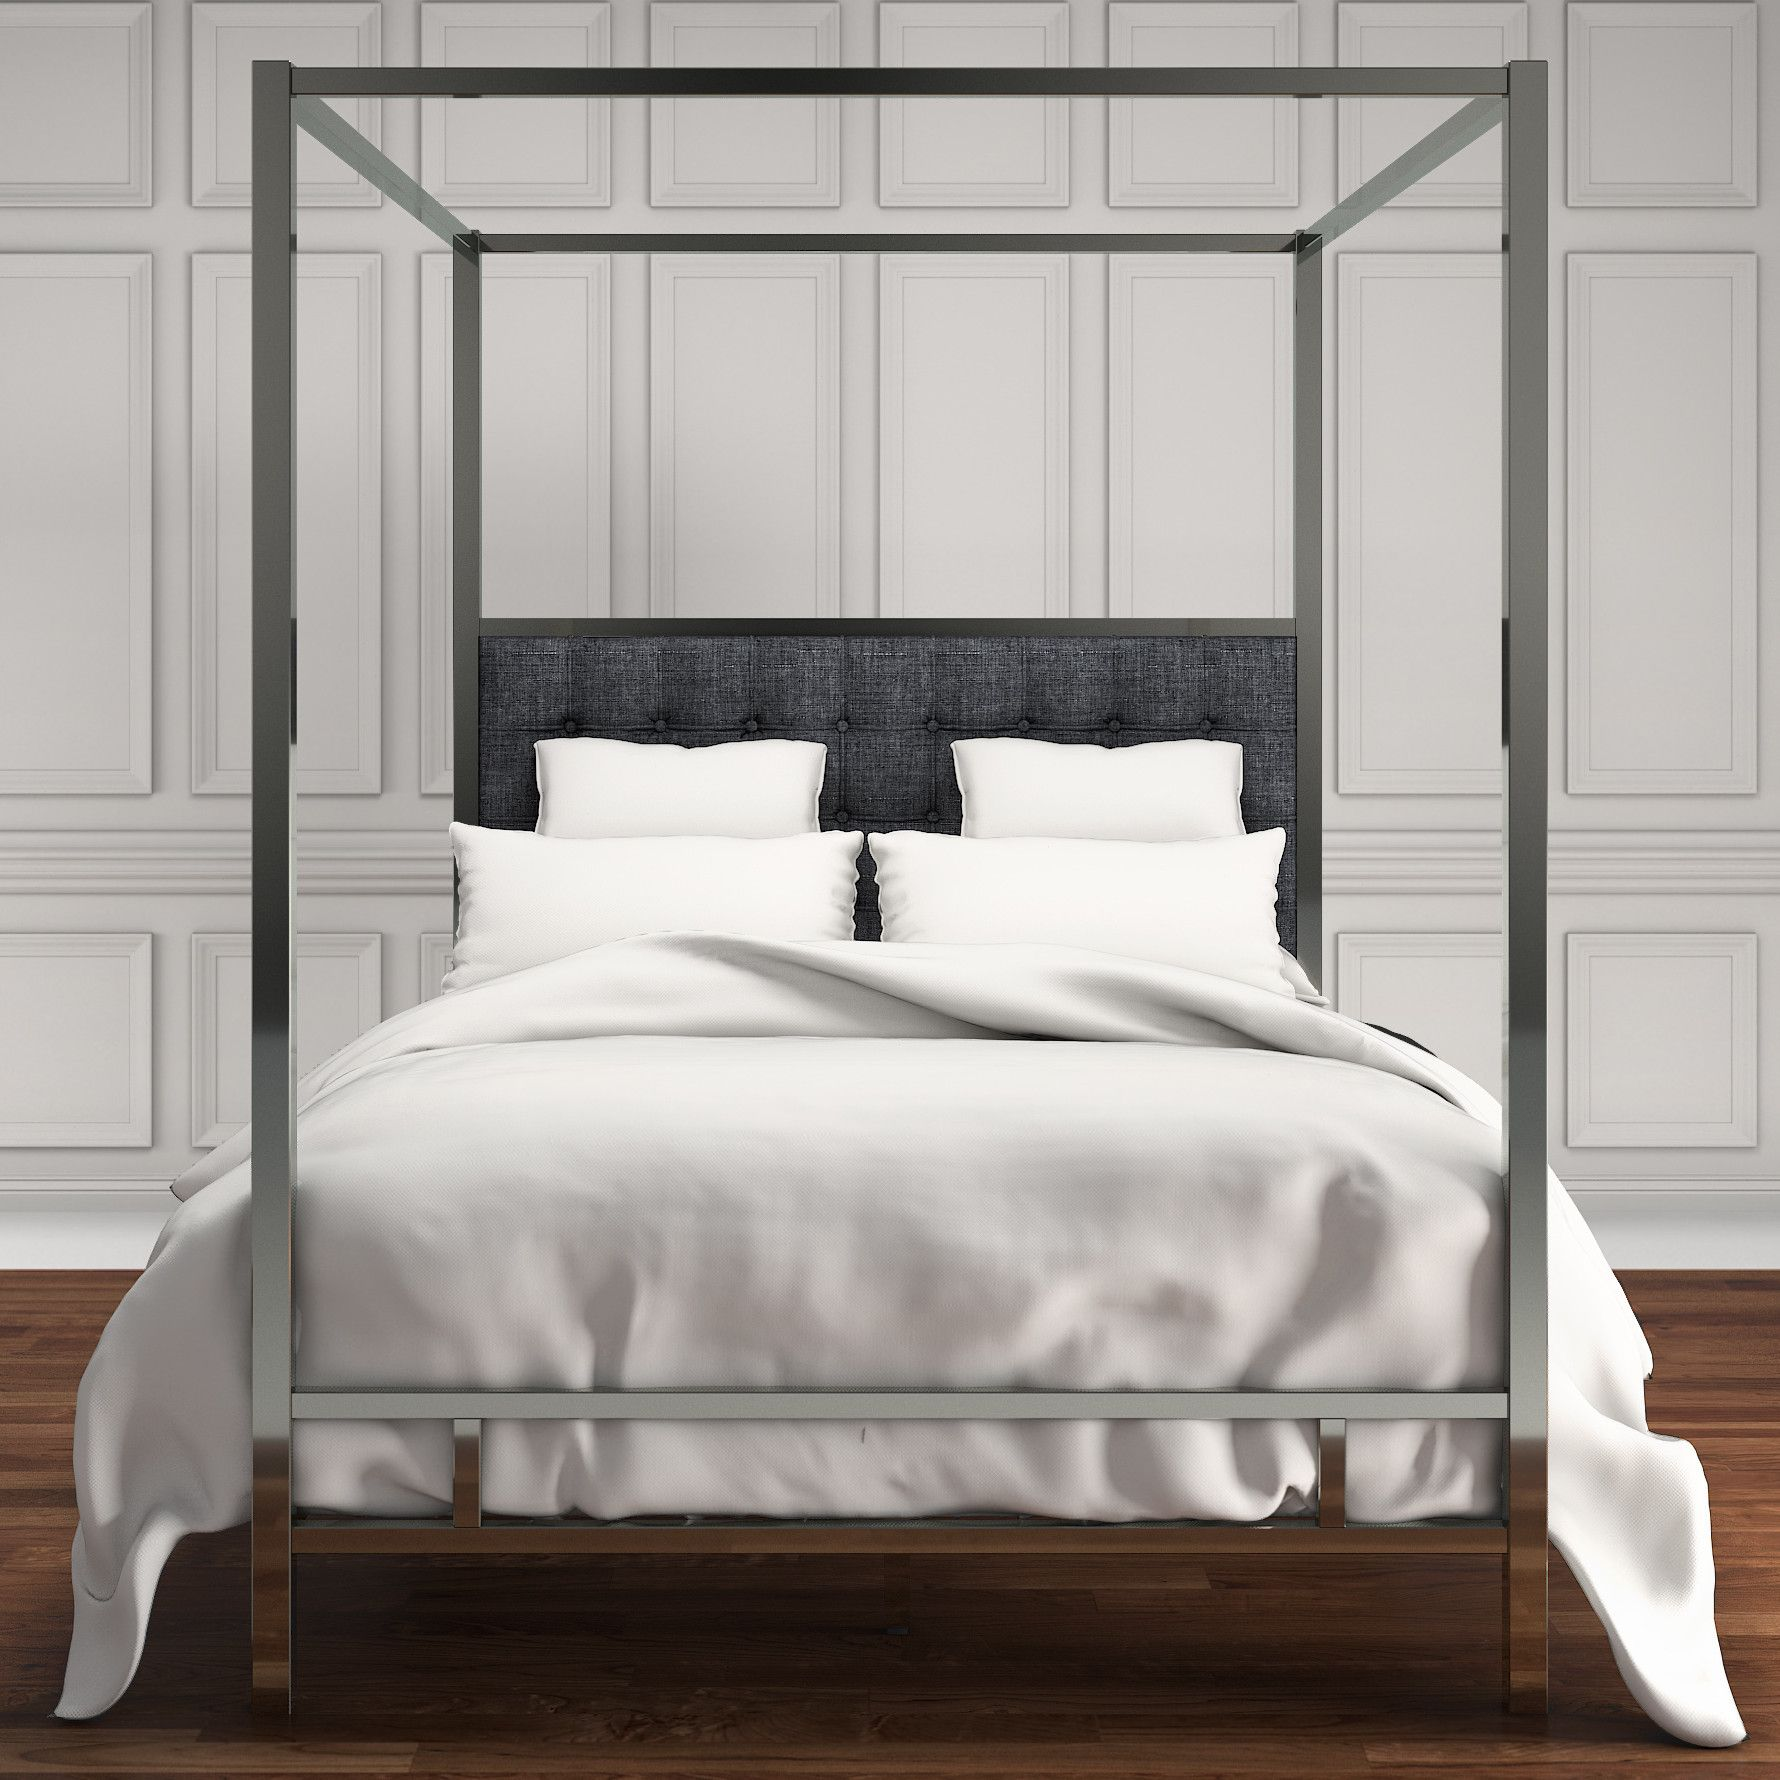 Stonehedge Upholstered Canopy Bed Upholstery bed, Bed